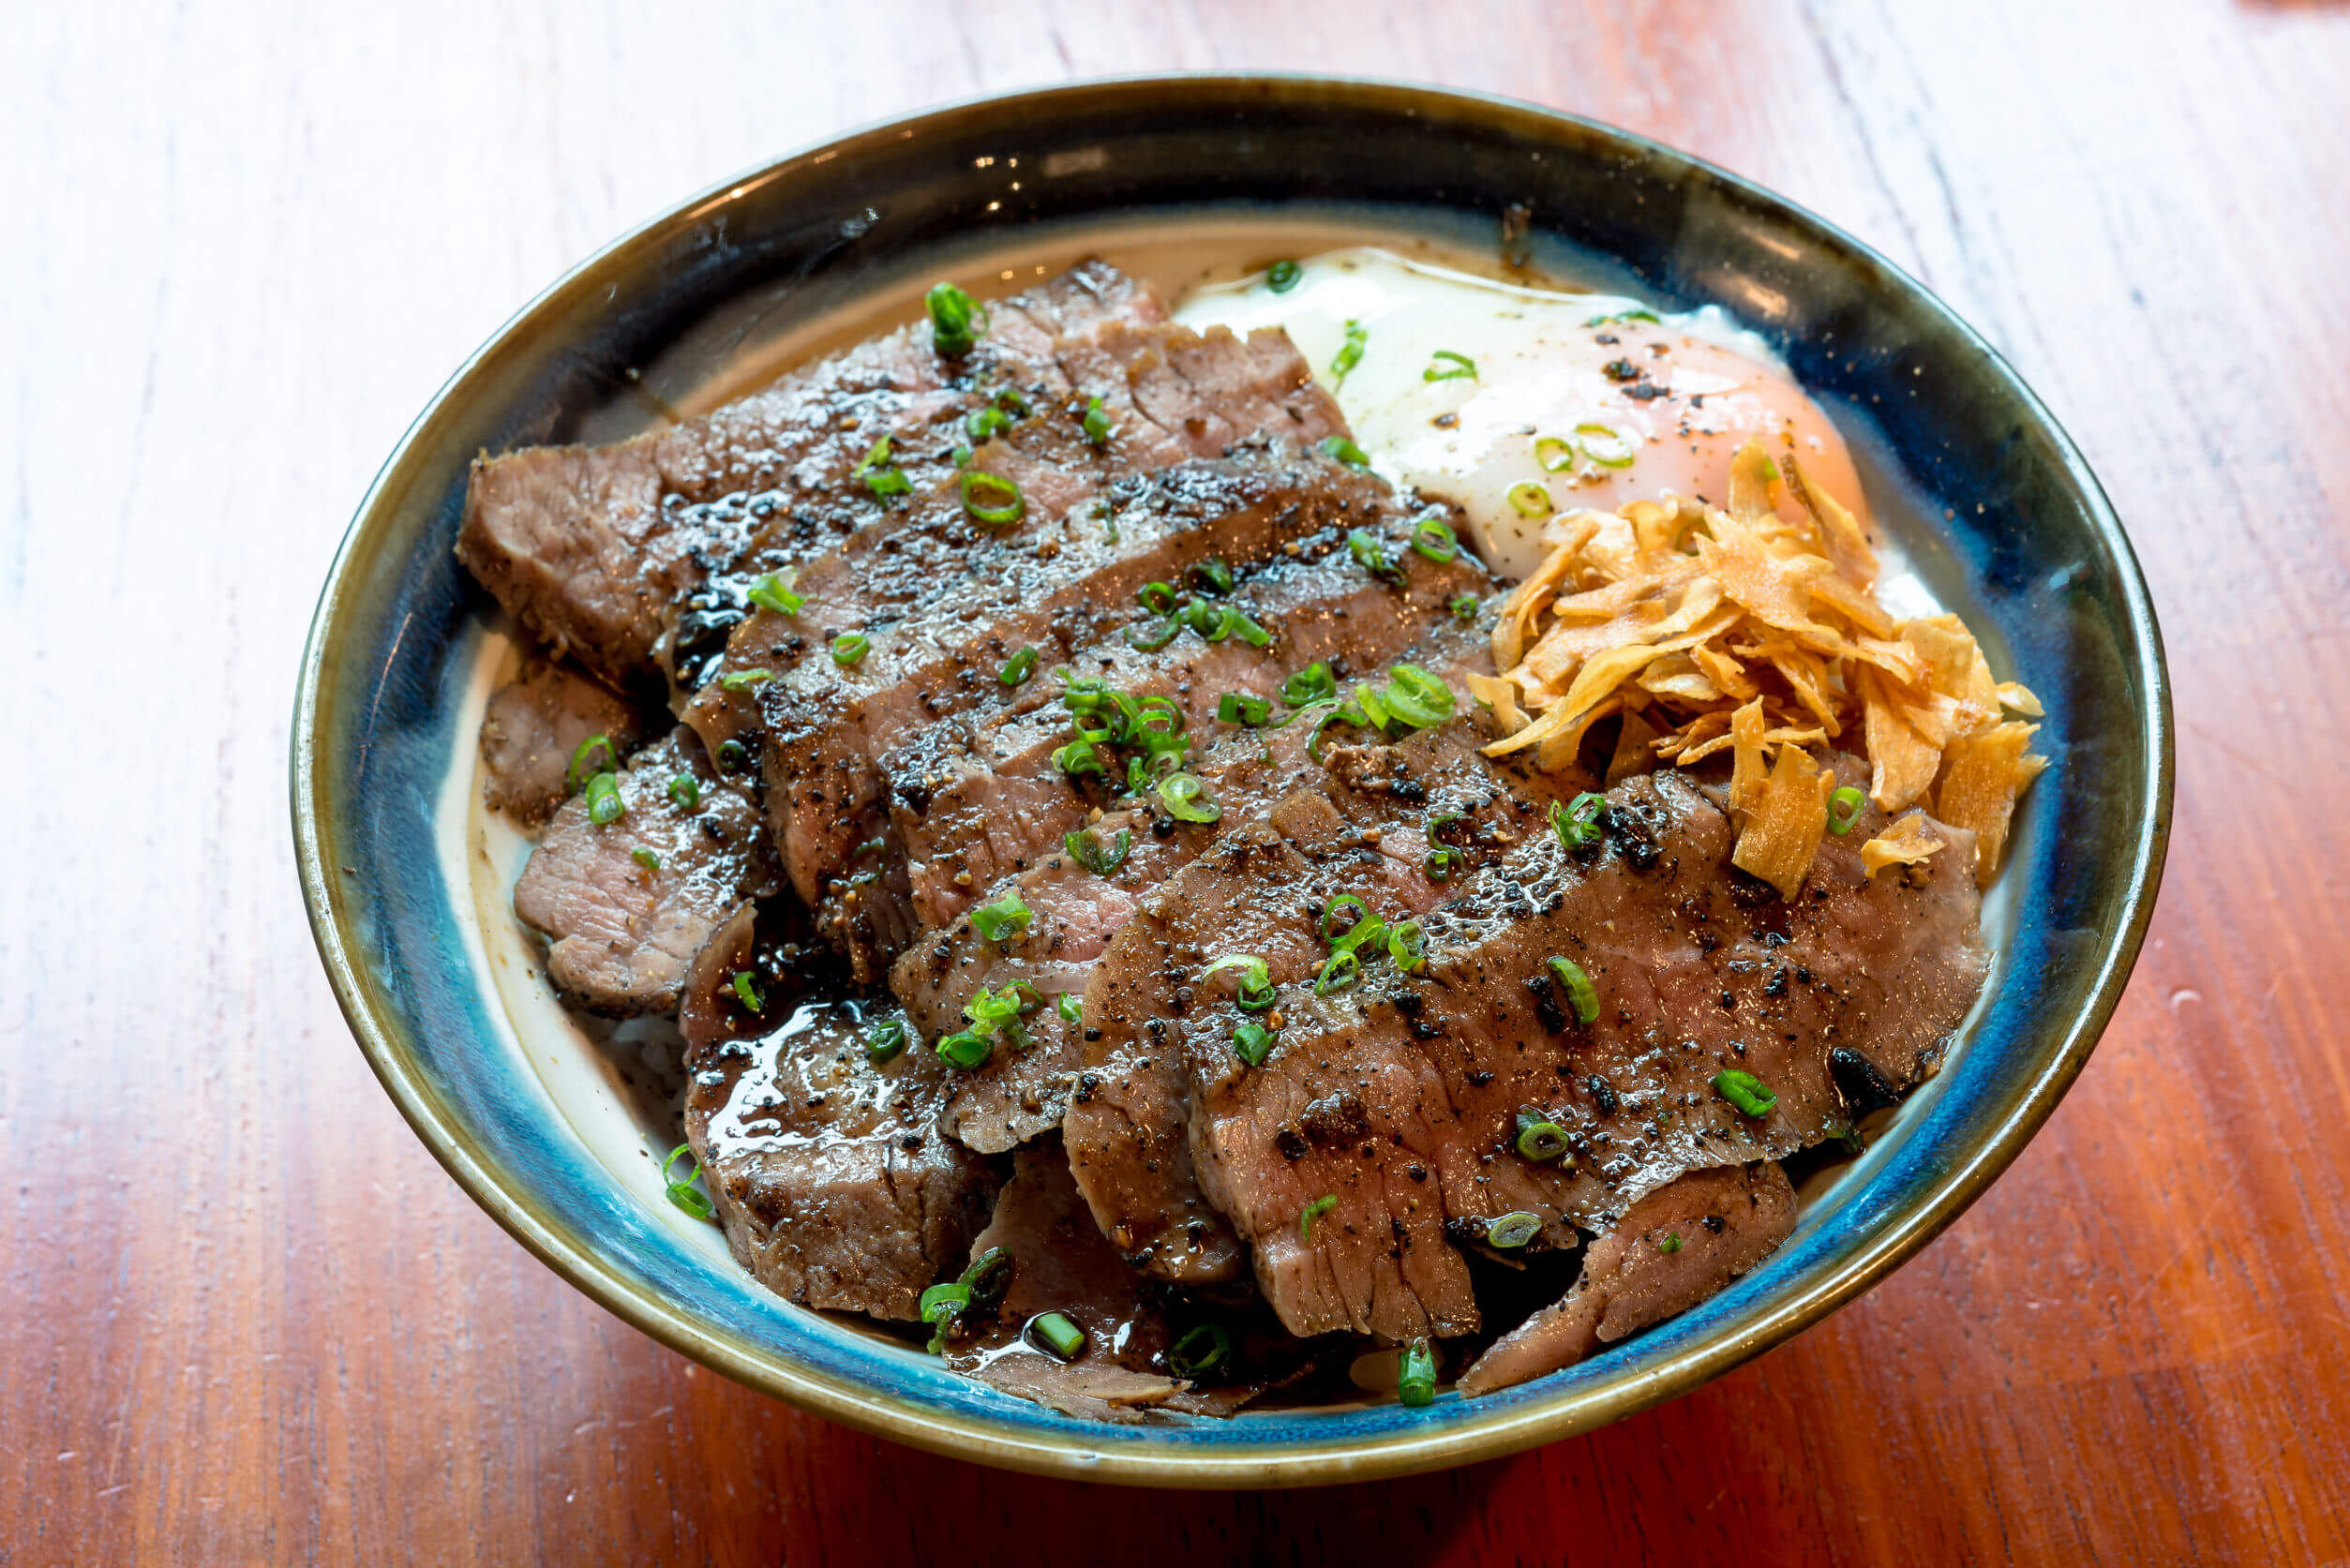 Beef Steak Donburi with egg and fried garlic